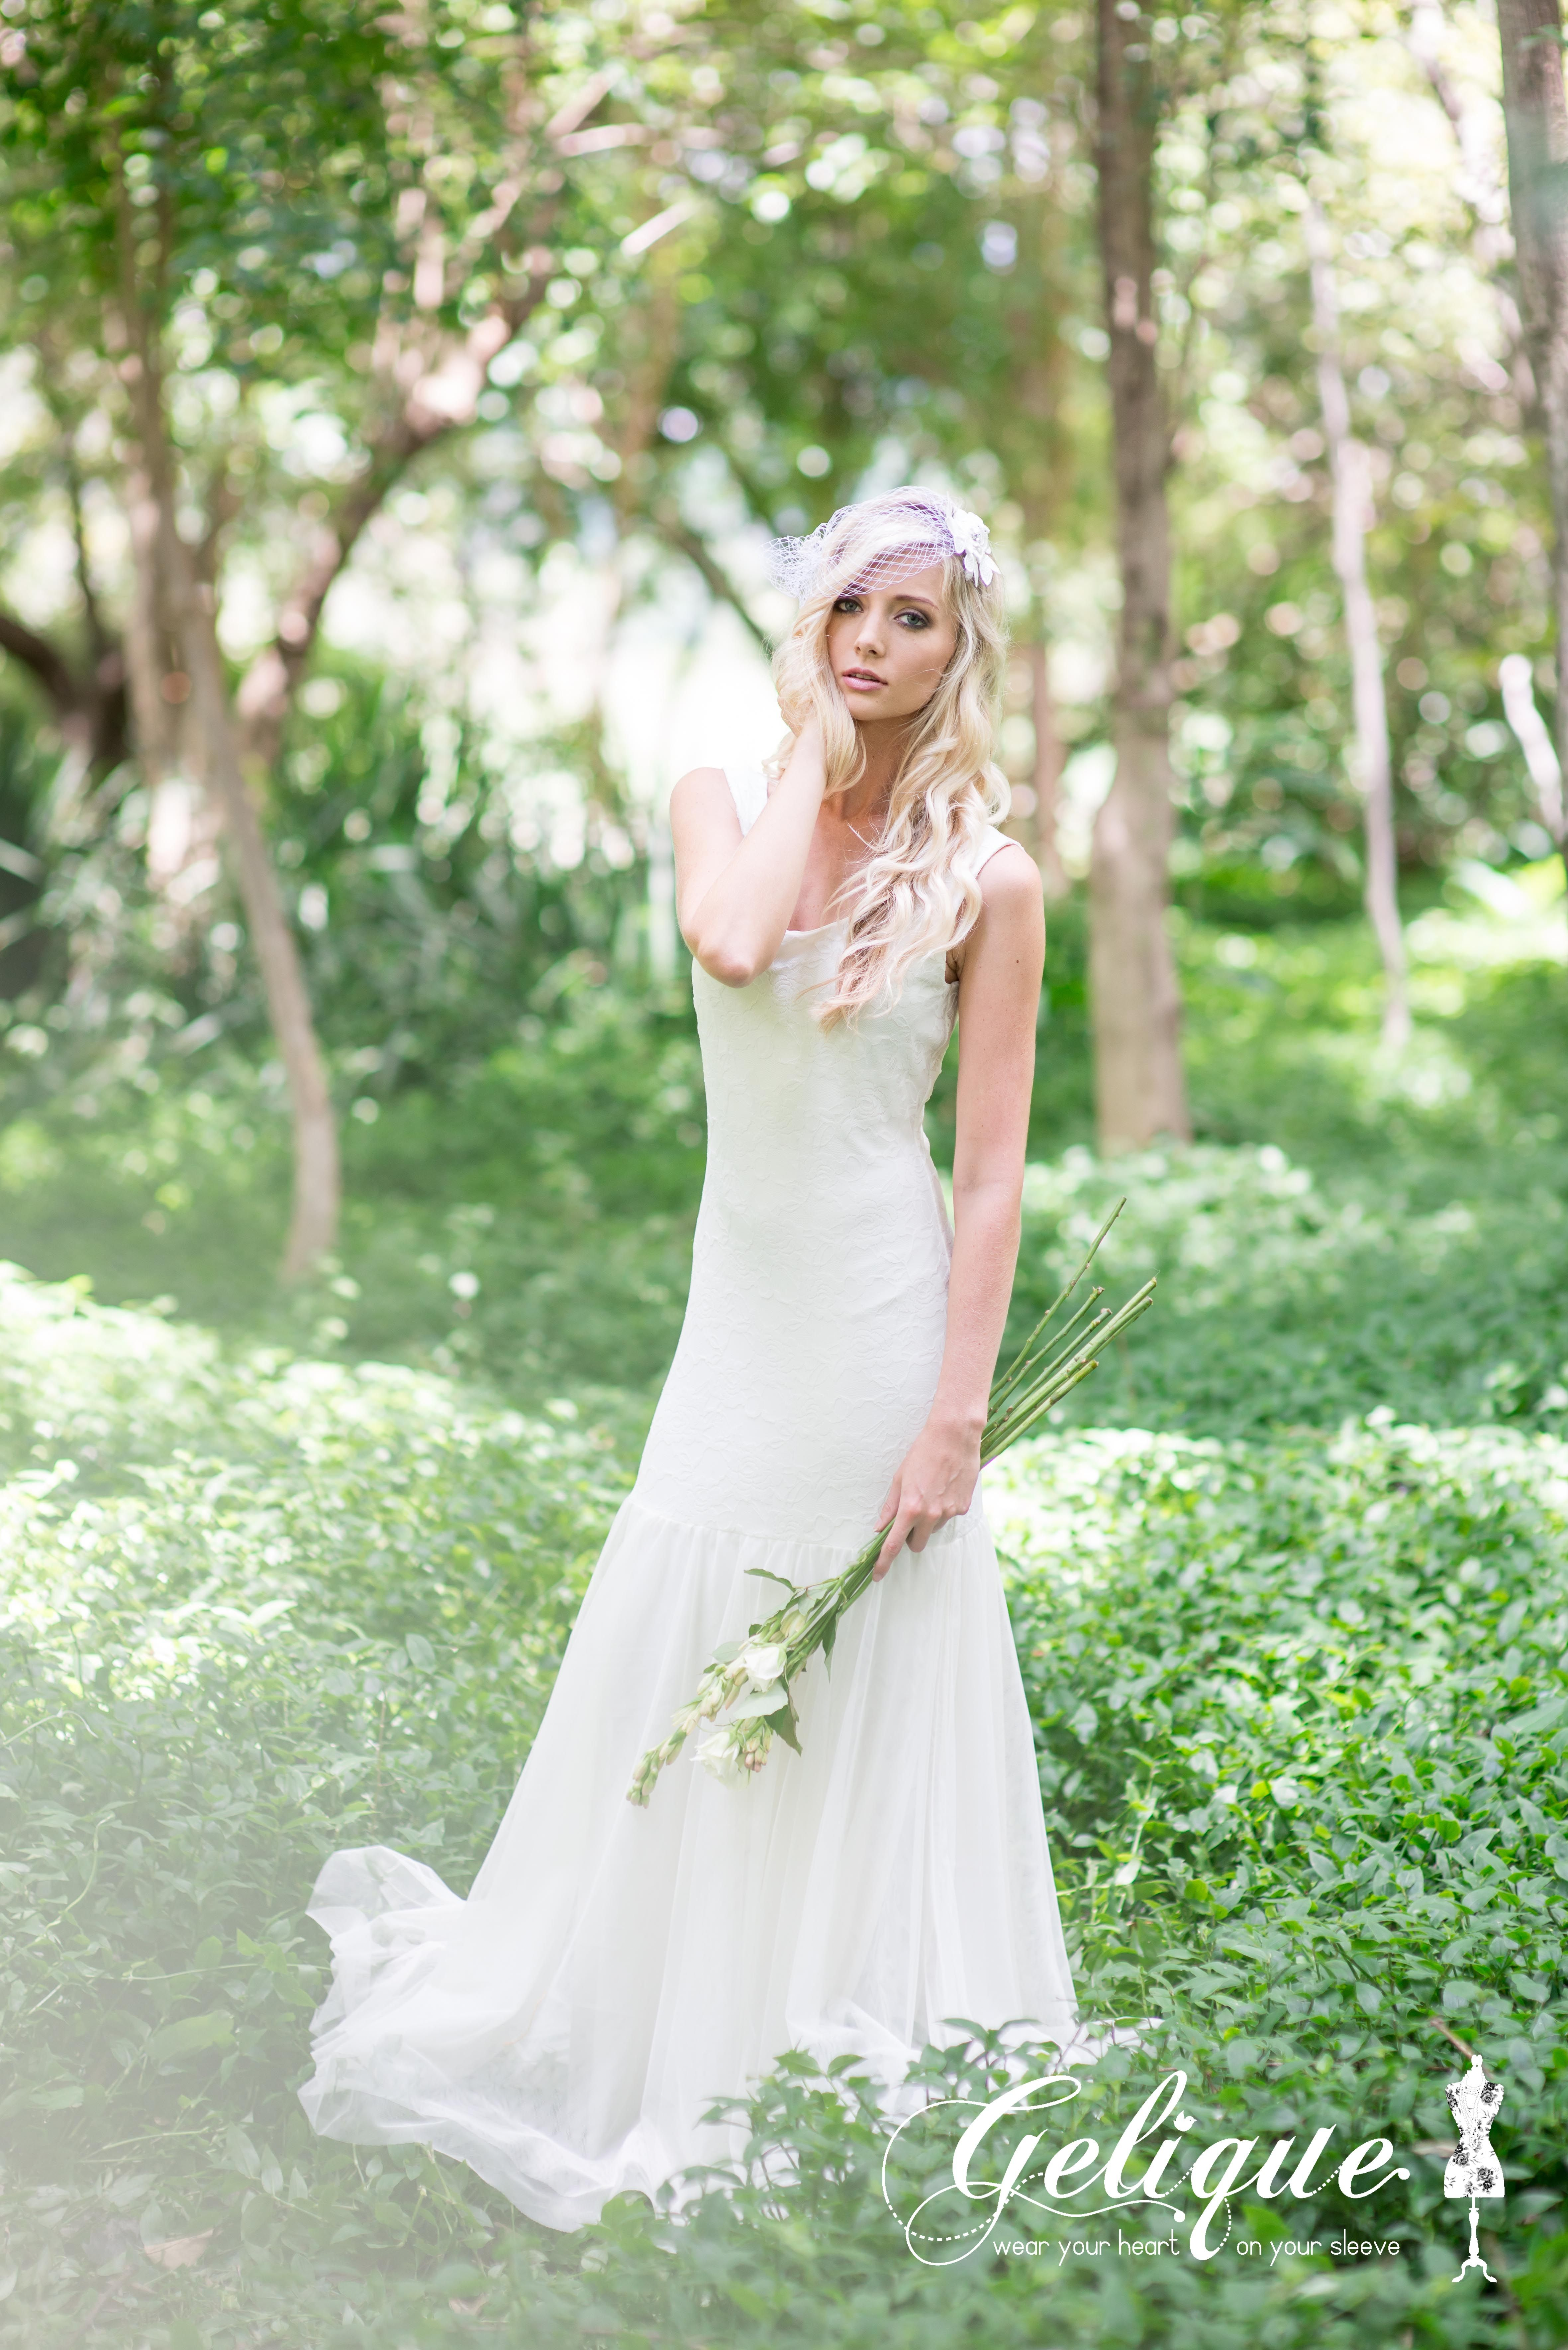 Lily ann dress from gelique simple sleek white bridesmaids dress lily ann dress from gelique simple sleek white bridesmaids dress available with ombrellifo Image collections